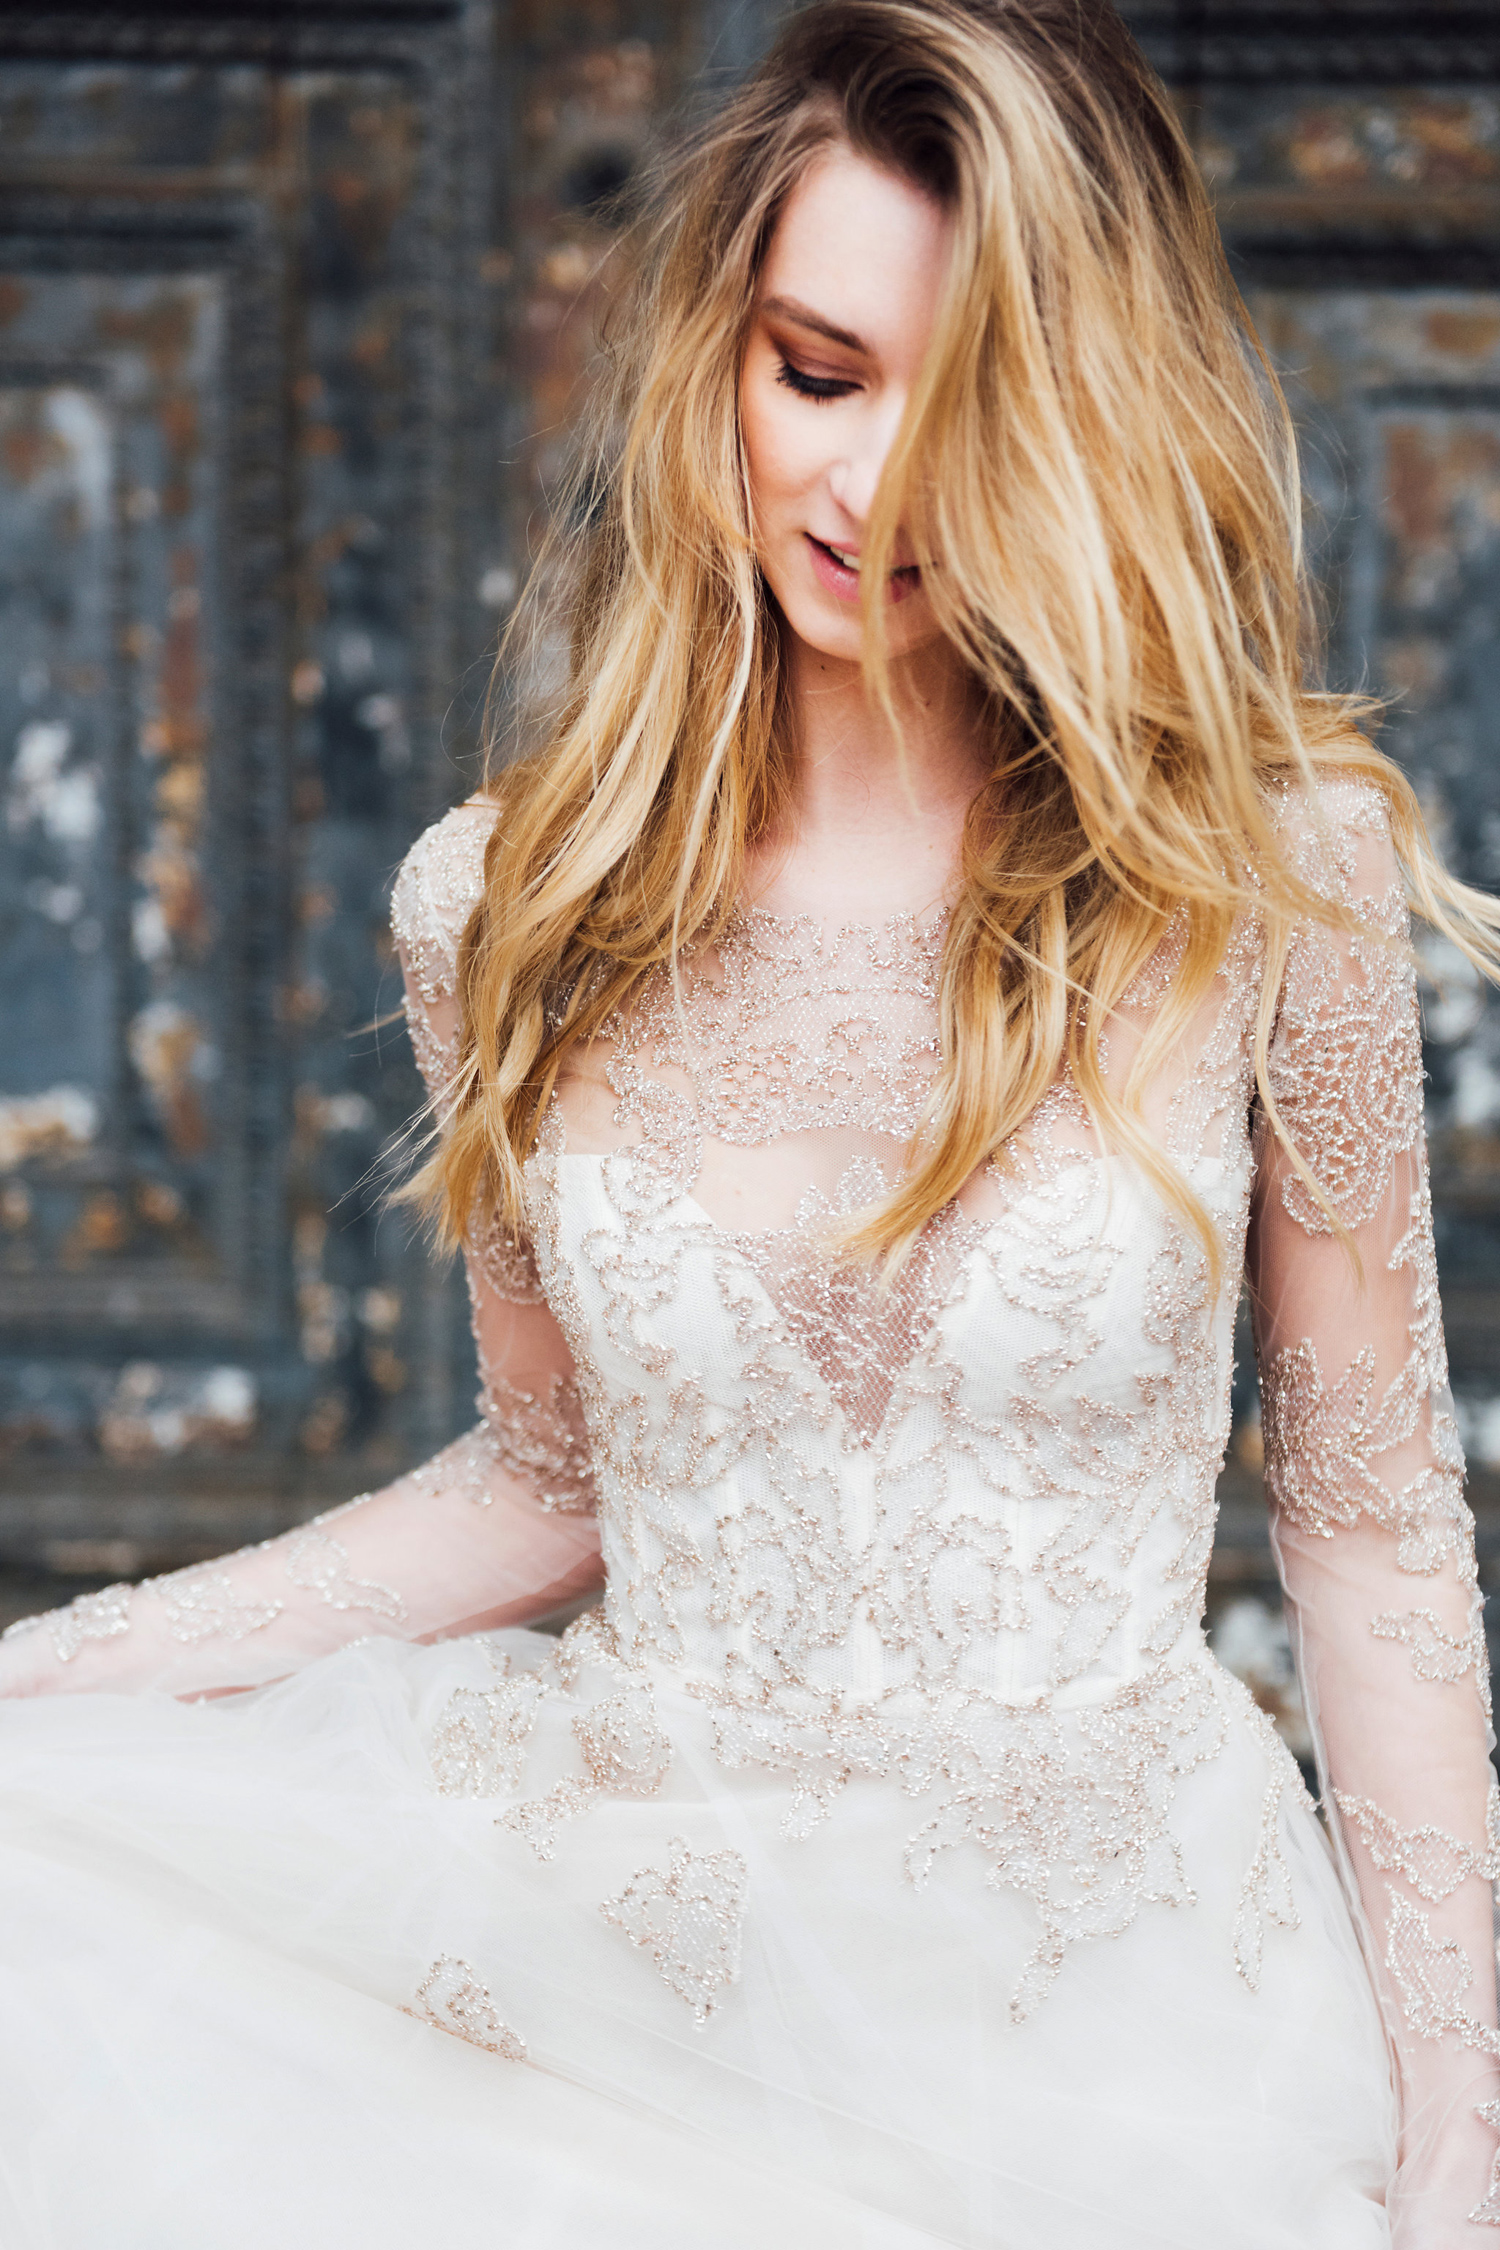 katie mitchell monique lhuillier bridal paris france wedding photographer_18.jpg